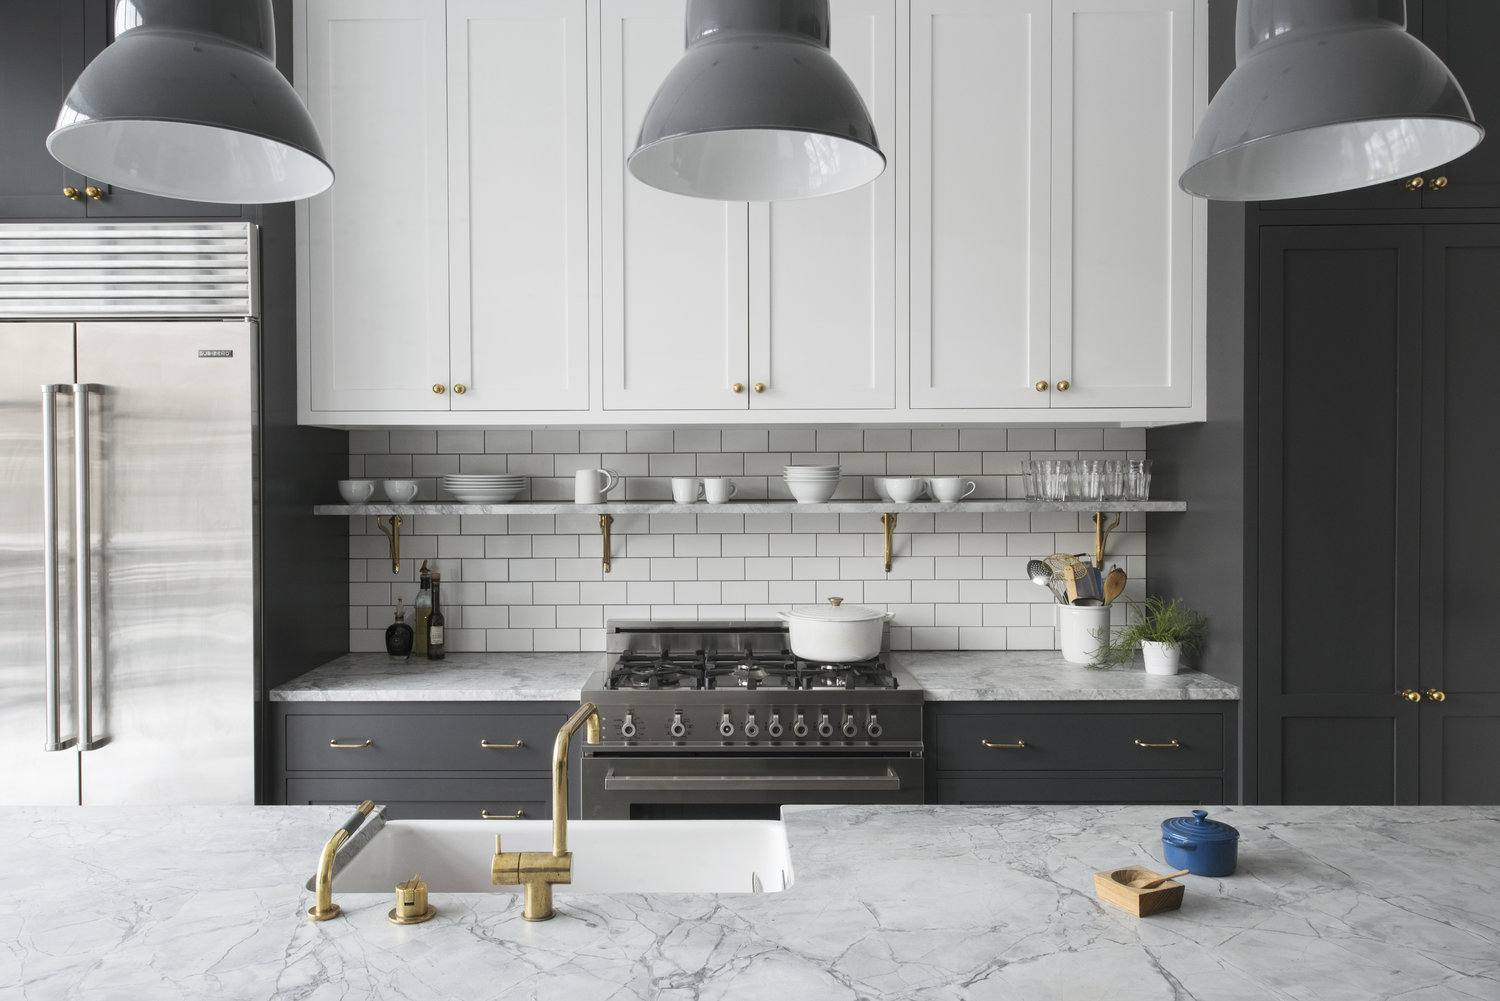 The 7 Best Countertop Materials, According to the Pros